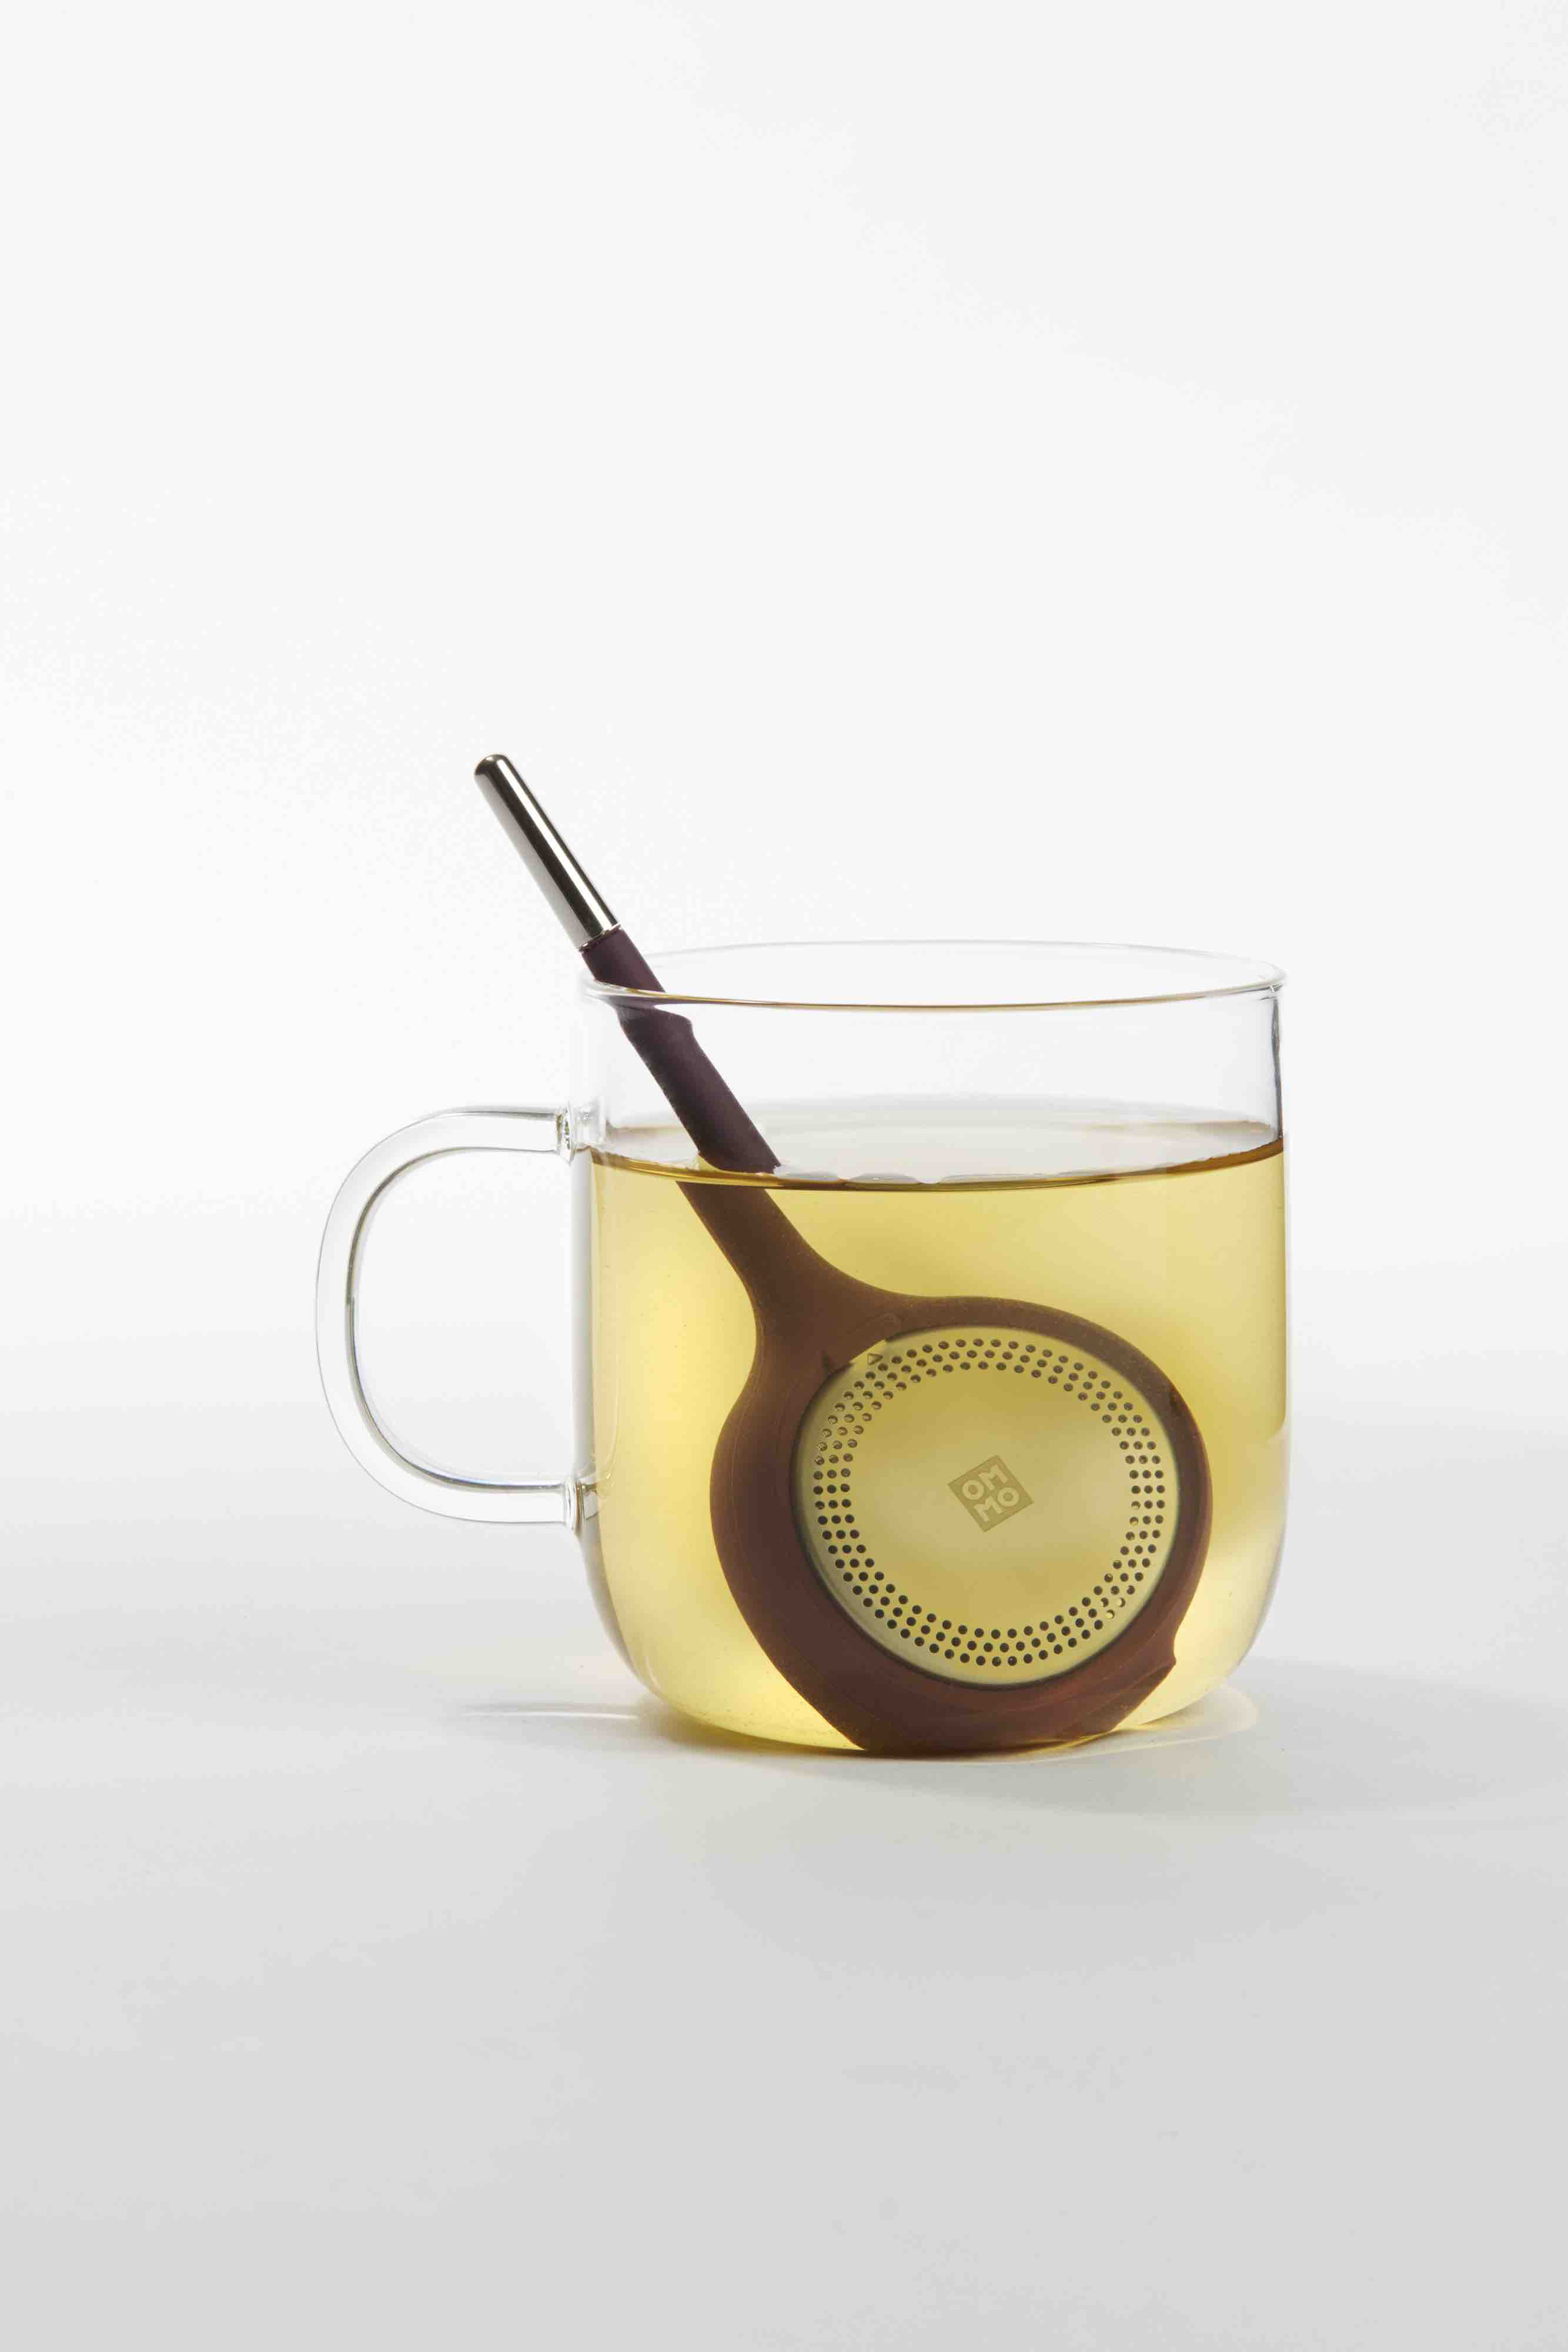 Koma